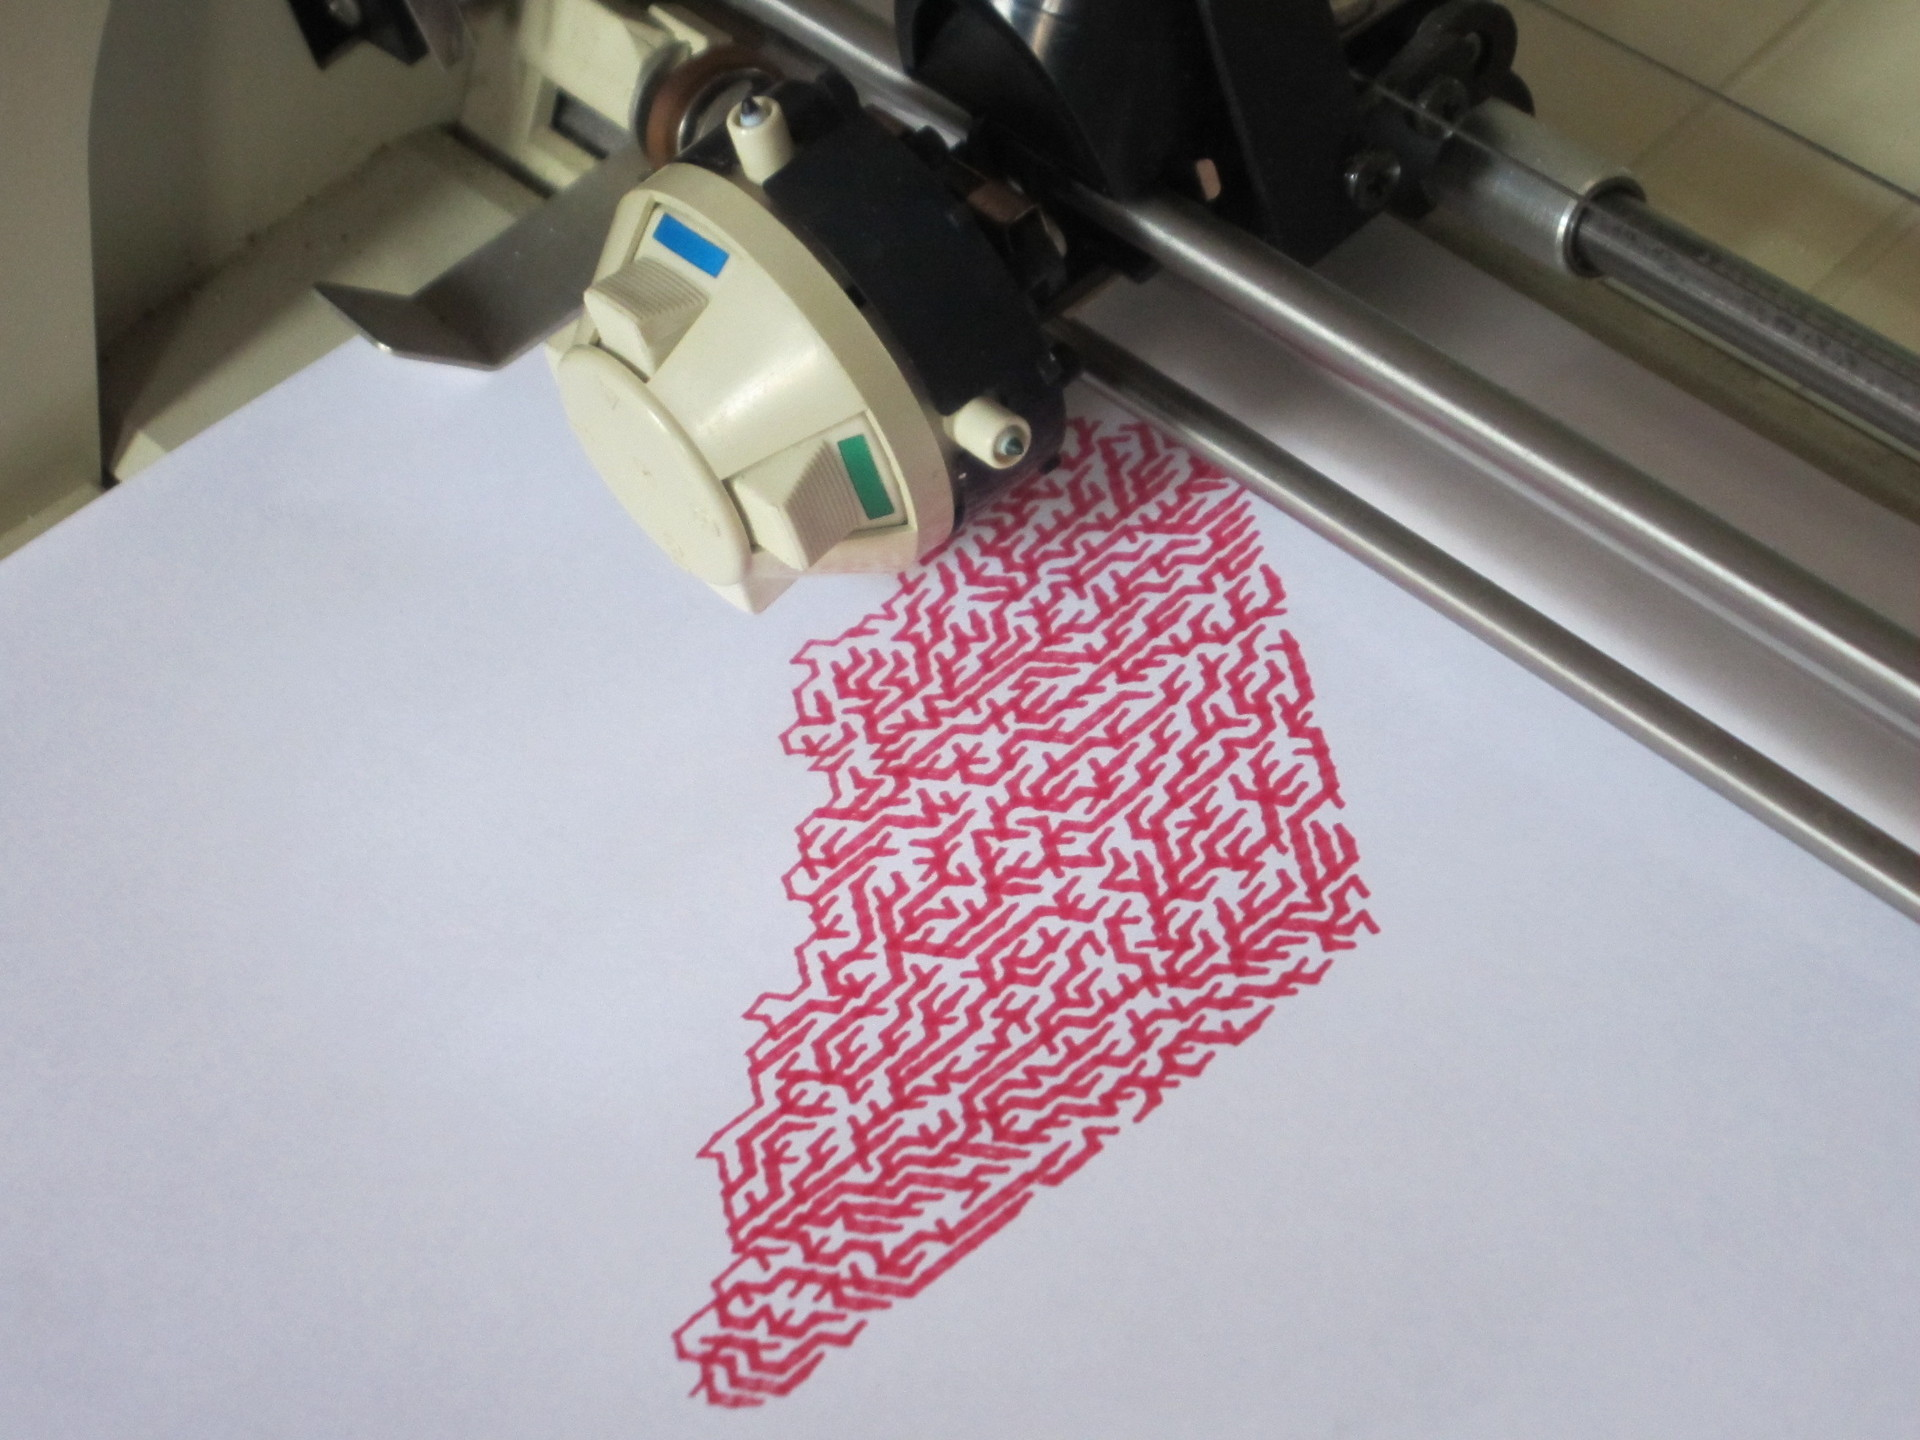 apple 410 color plotter » NYC Resistor